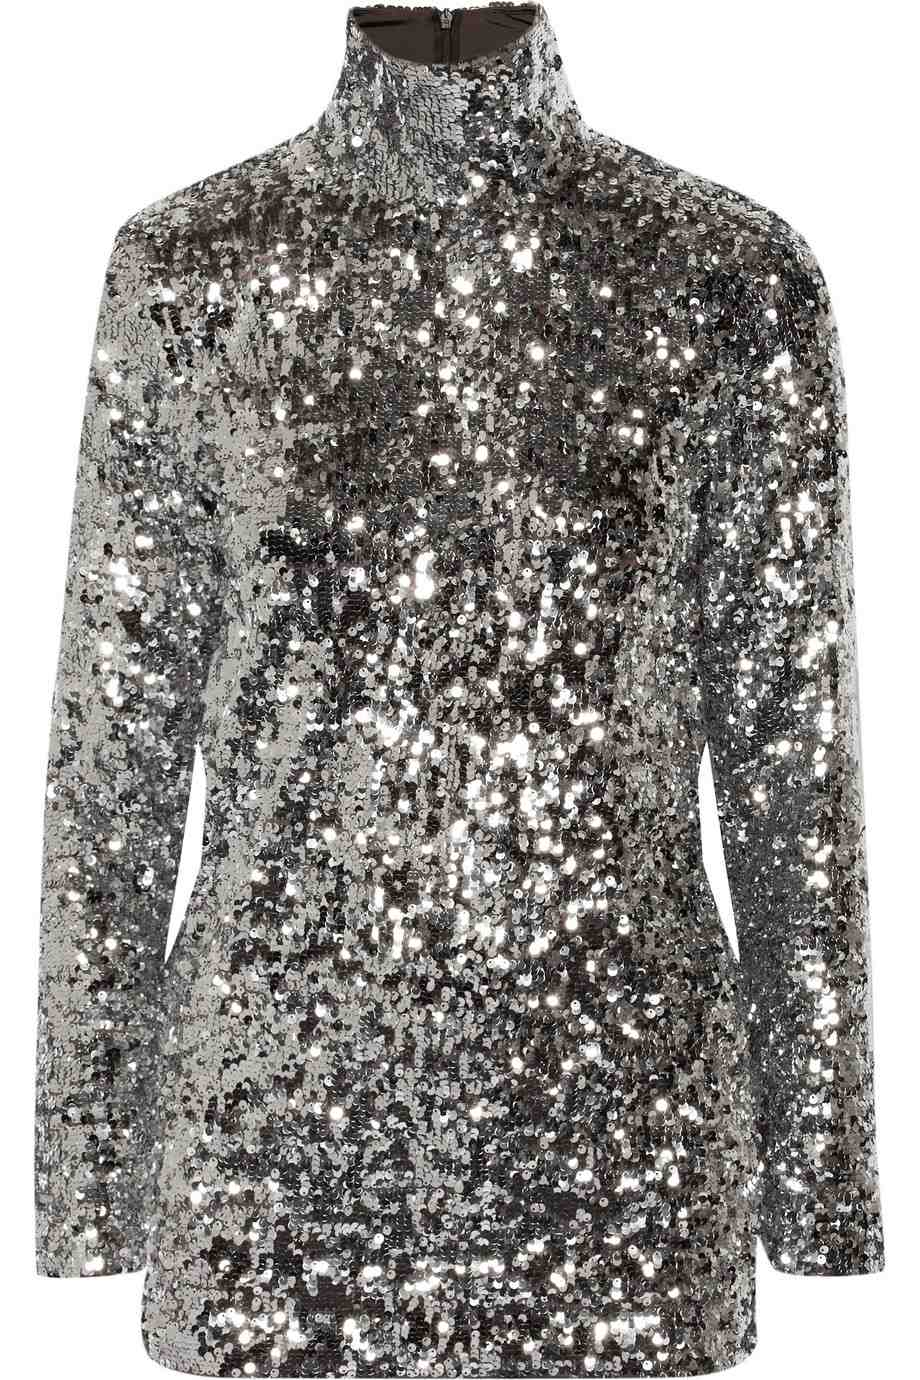 By Marlene Birger - Pull (420 €)